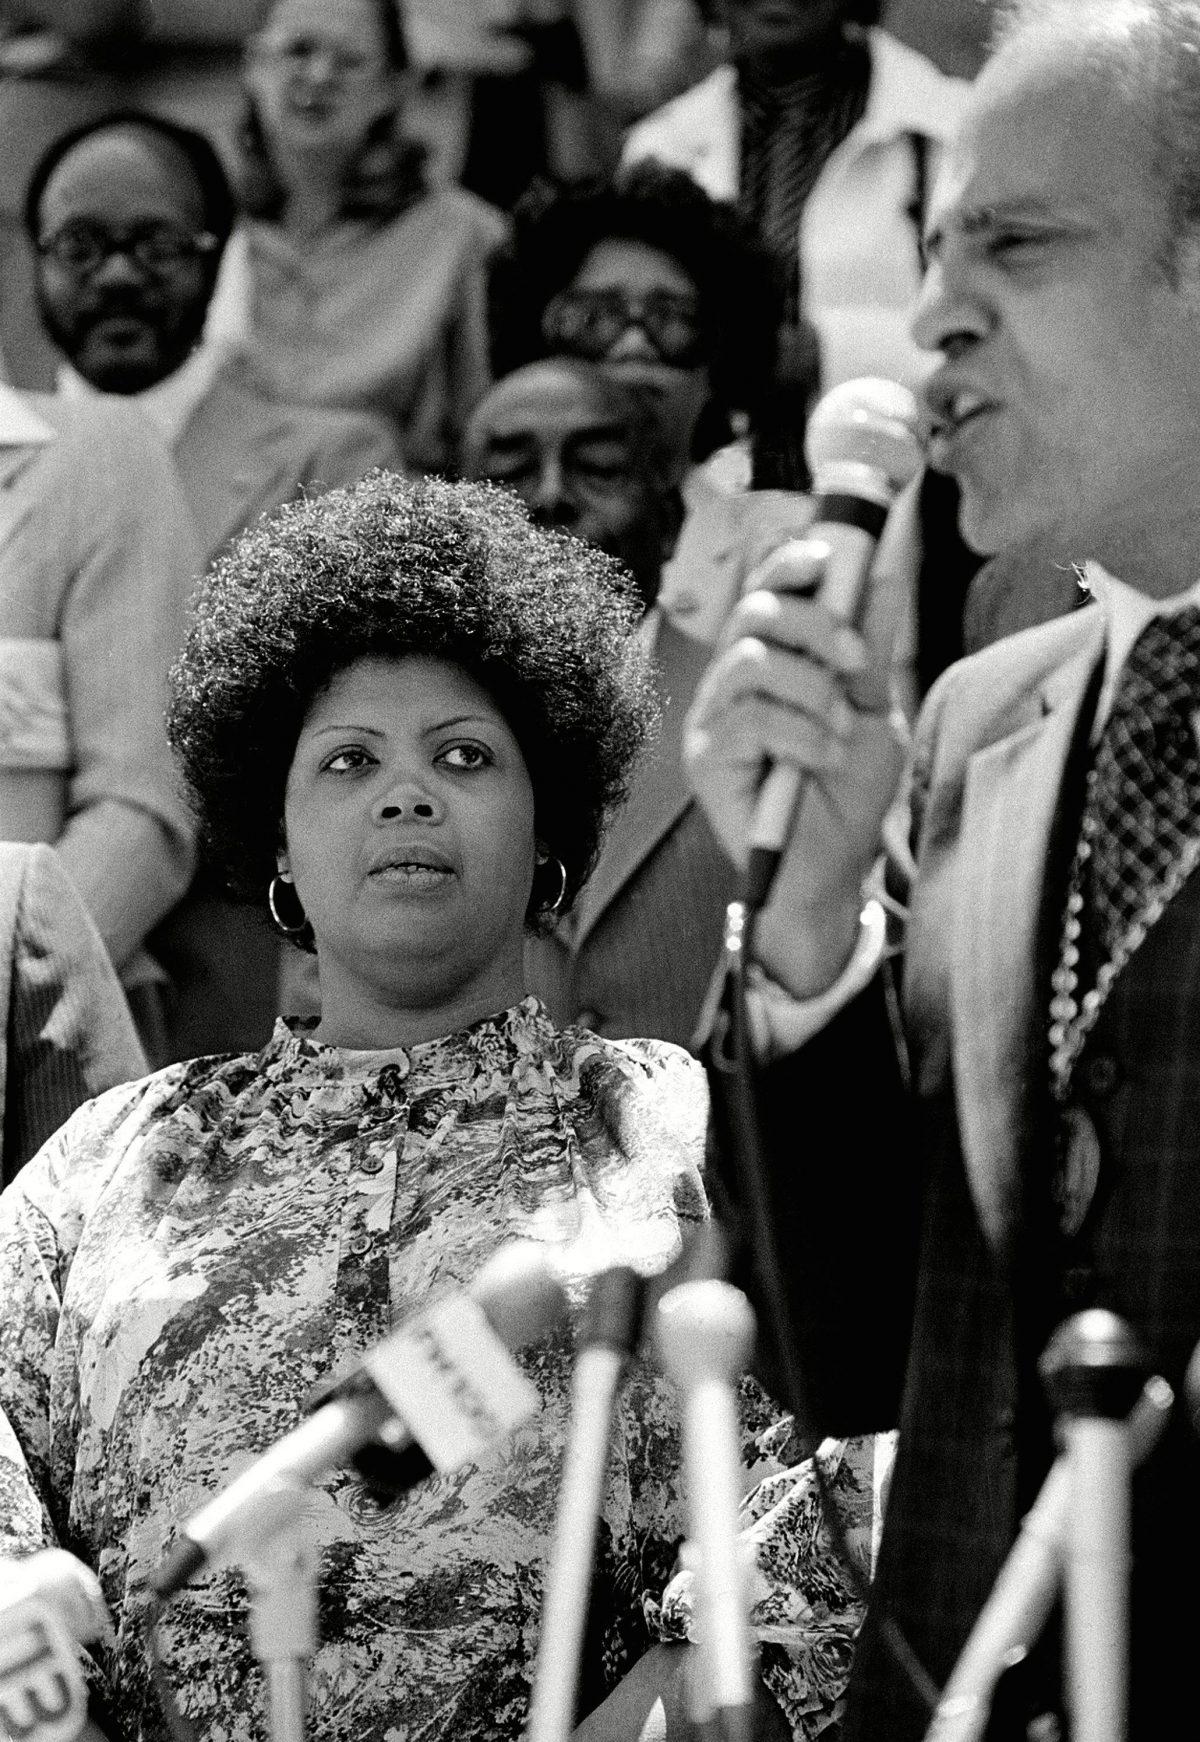 Linda Brown, left, of Topeka, Kansas, listens to Benjamin L. Hooks, executive director of the NAACP, during ceremonies observing the 25th anniversary of the U.S. Supreme Court's desegregation ruling in the Brown v. Board of Education of Topeka in Columbus, S.C., May 1979. It was Brown's father who initiated the class-action suit in the Brown v. Board of Education of Topeka, Kans., which led to the U.S. Supreme Court's 1954 landmark decision against school segregation BROWN V BOE 25TH ANNIVERSARY, COLUMBUS, USA